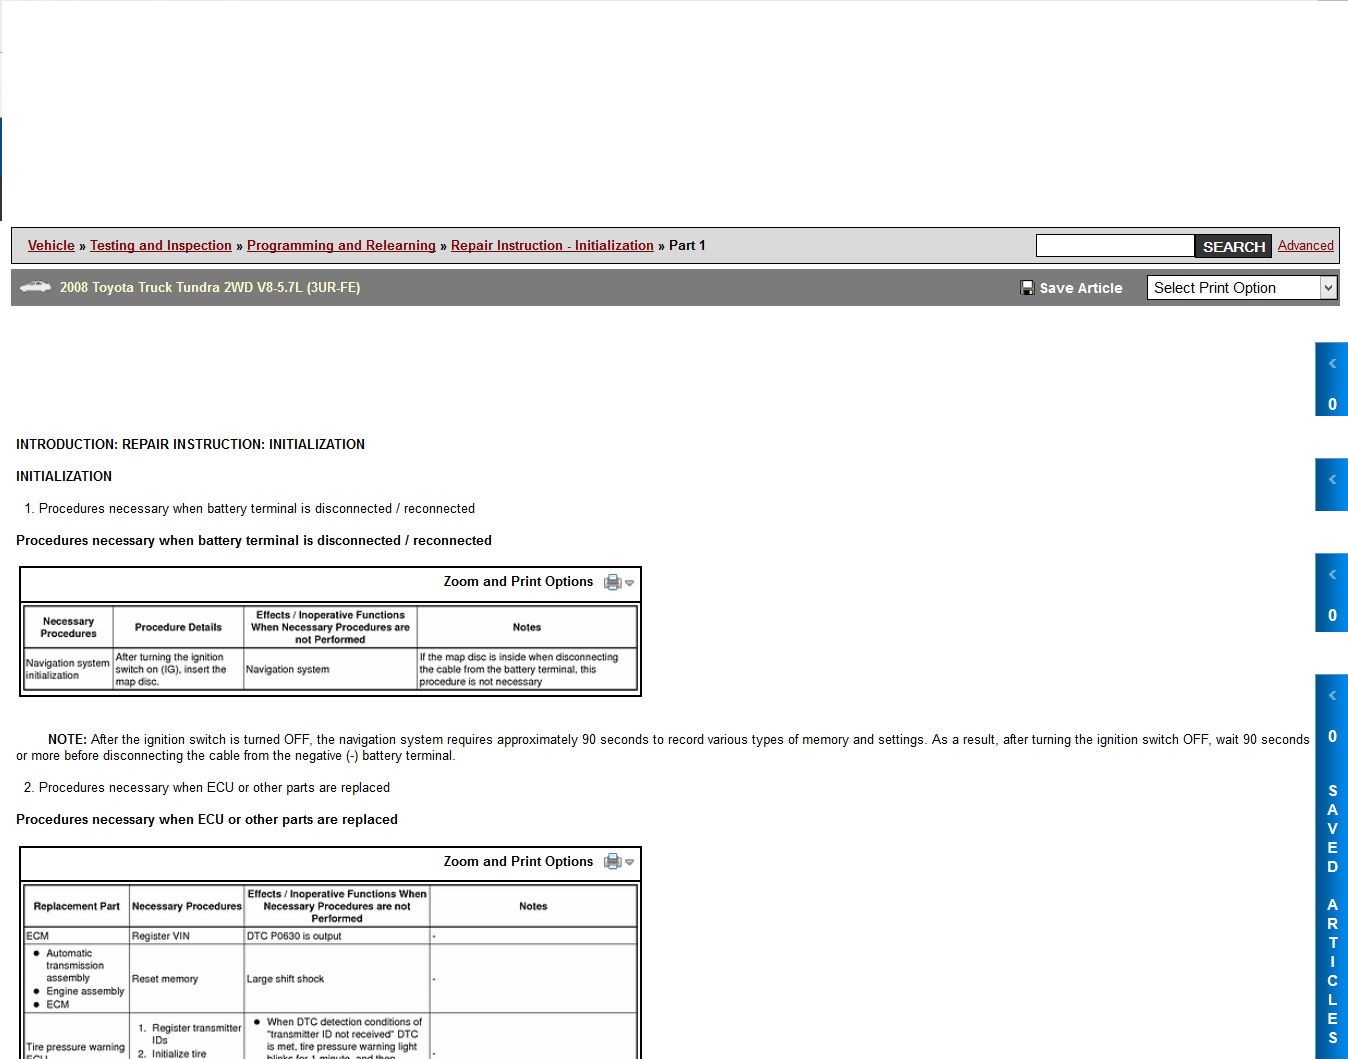 Toyota Sienna Service Manual: Check that initialization has been completed